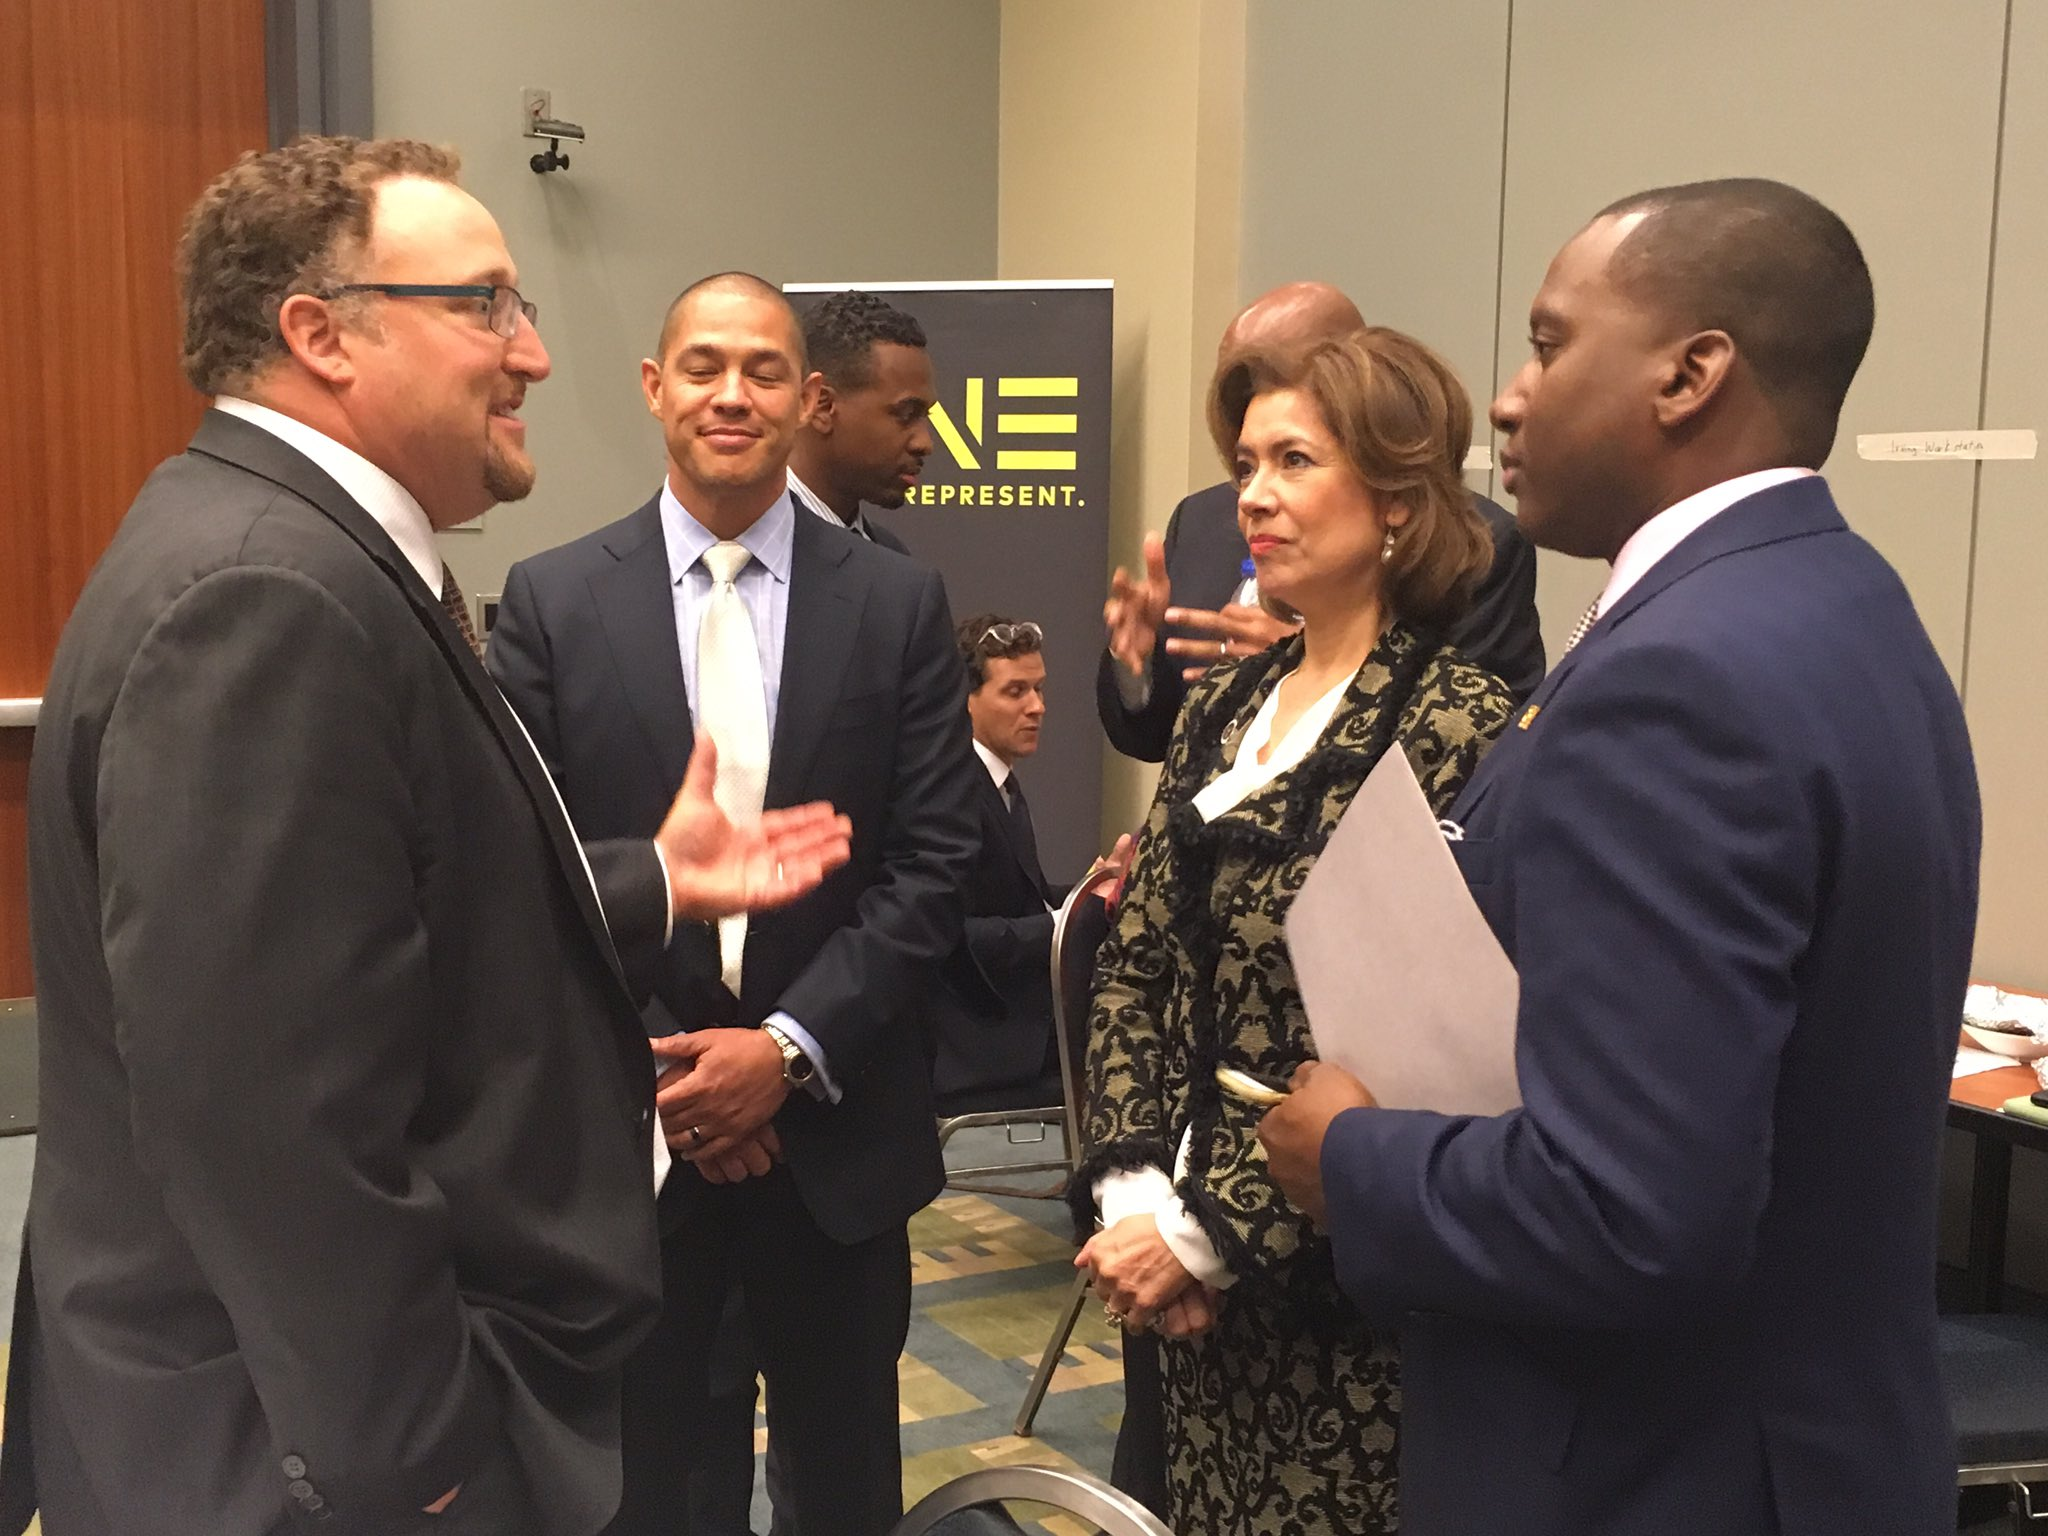 @MENTORnational CEO speaking to Administrator of Sm Business Admin @MCS4Biz #CBCFALC16 #mentorIRL @dshapMENTOR https://t.co/zYiakxSOyw